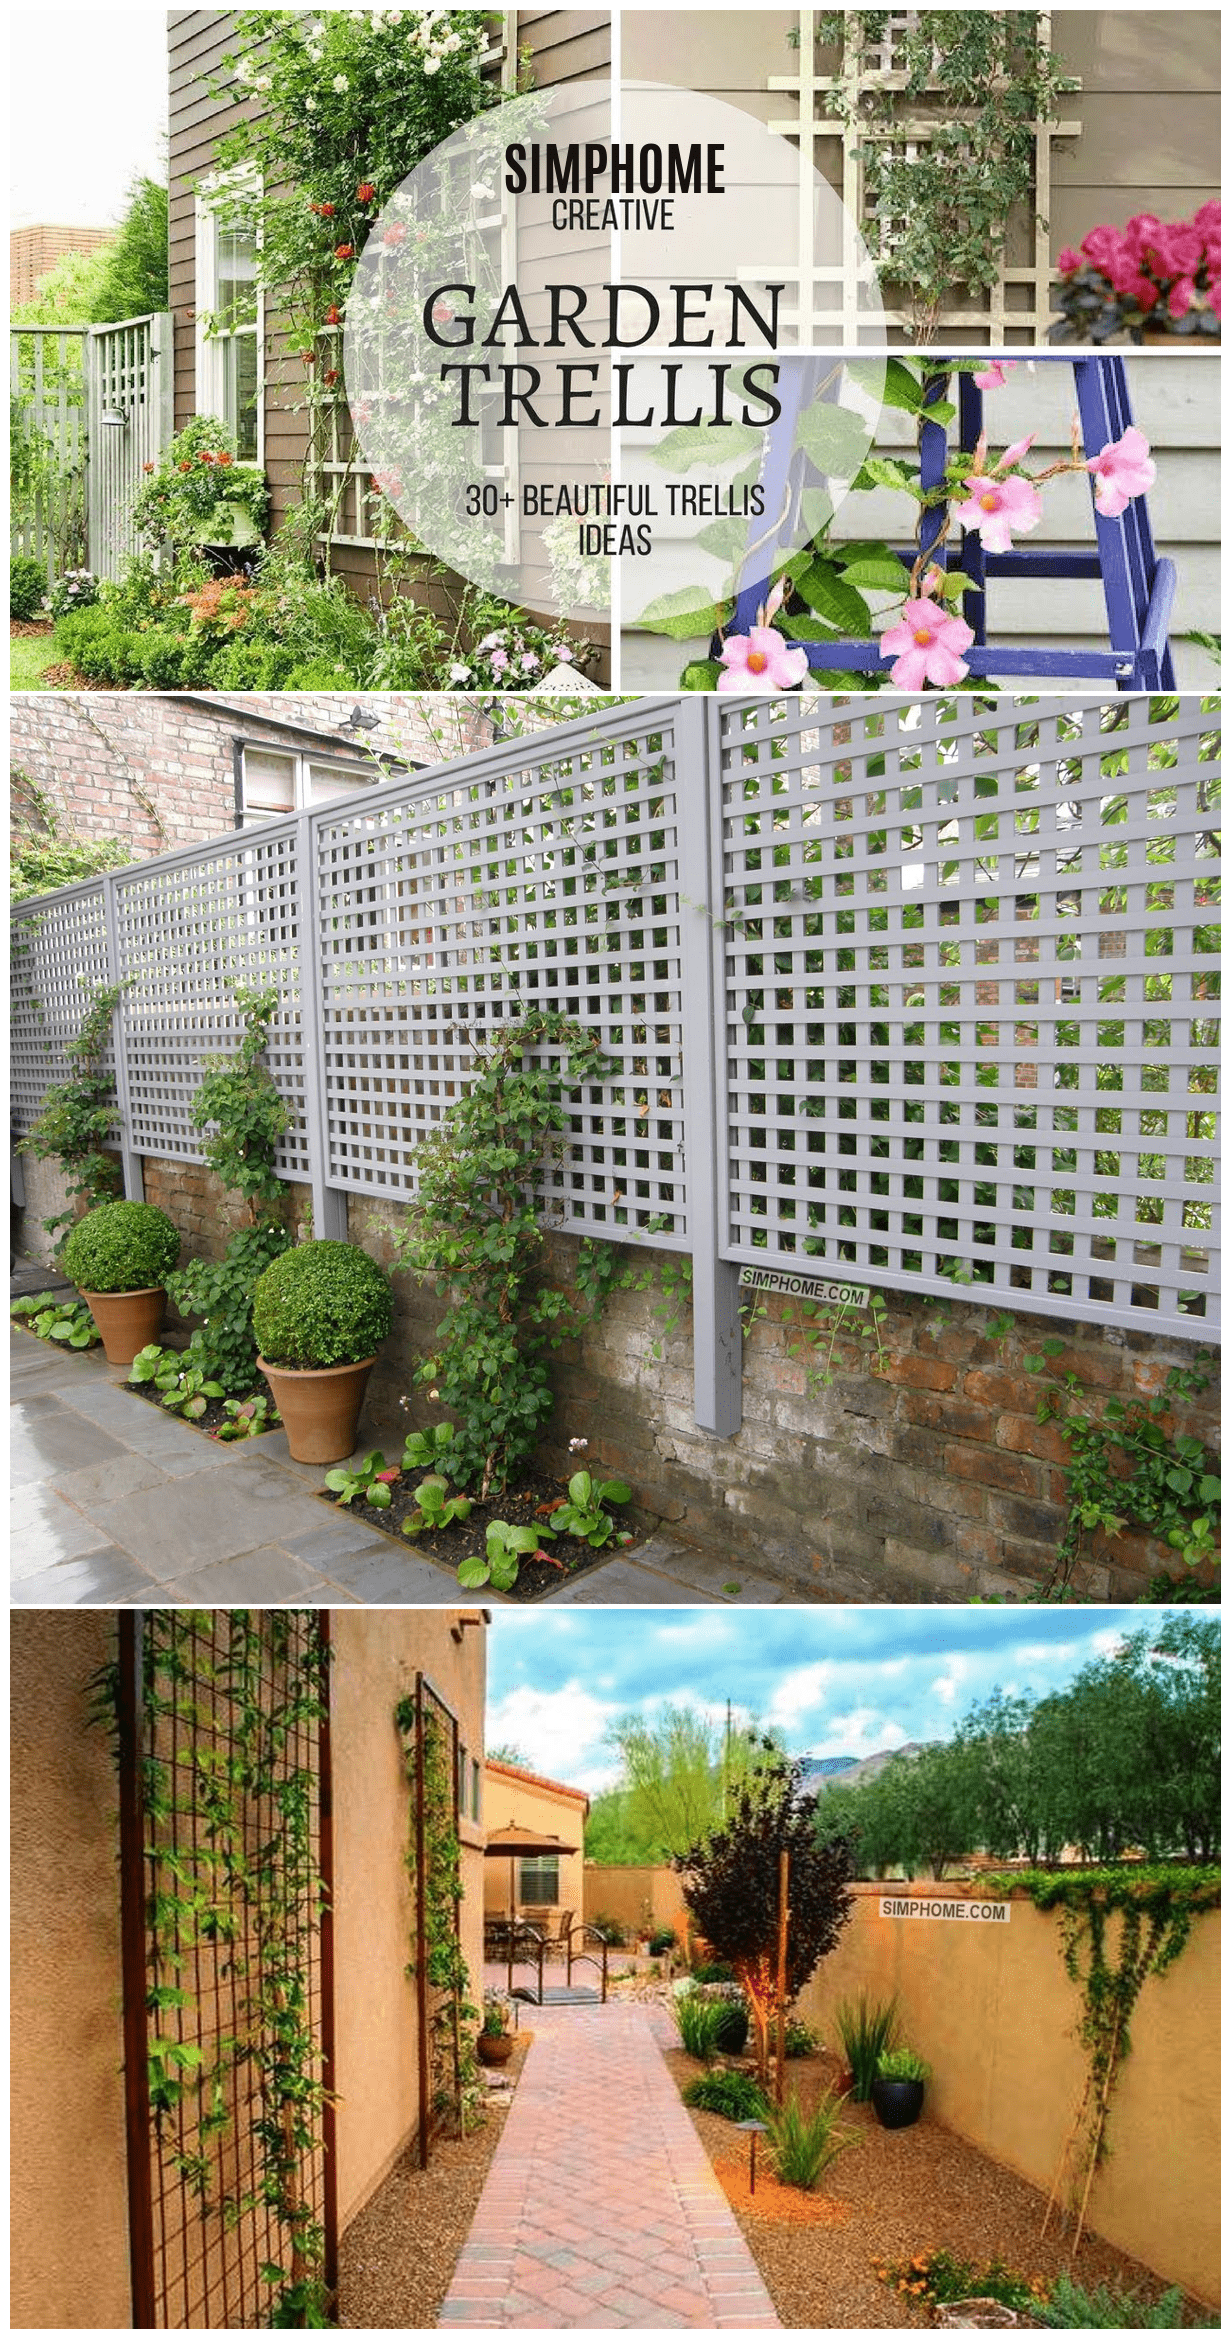 Simphome.com Garden trellis ideas creative ones best for 2020 2021 2022